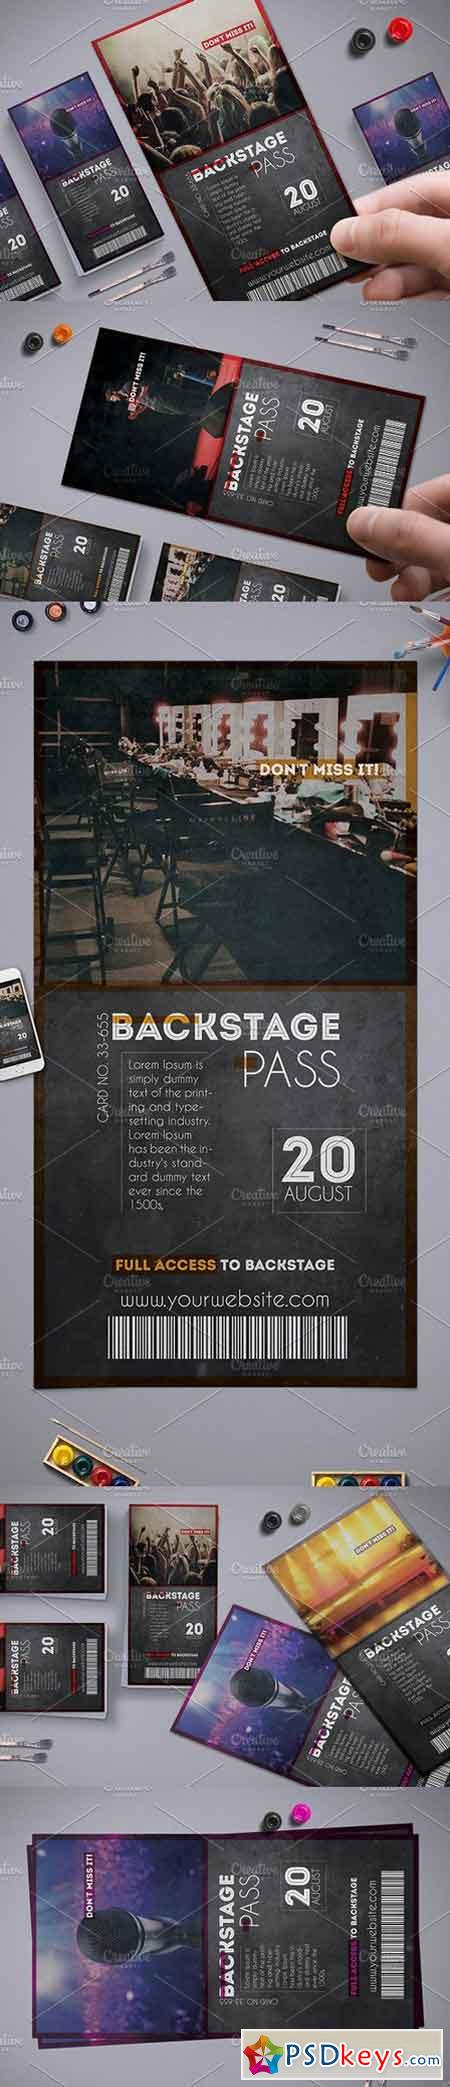 PASS » Free Download Photoshop Vector Stock image Via